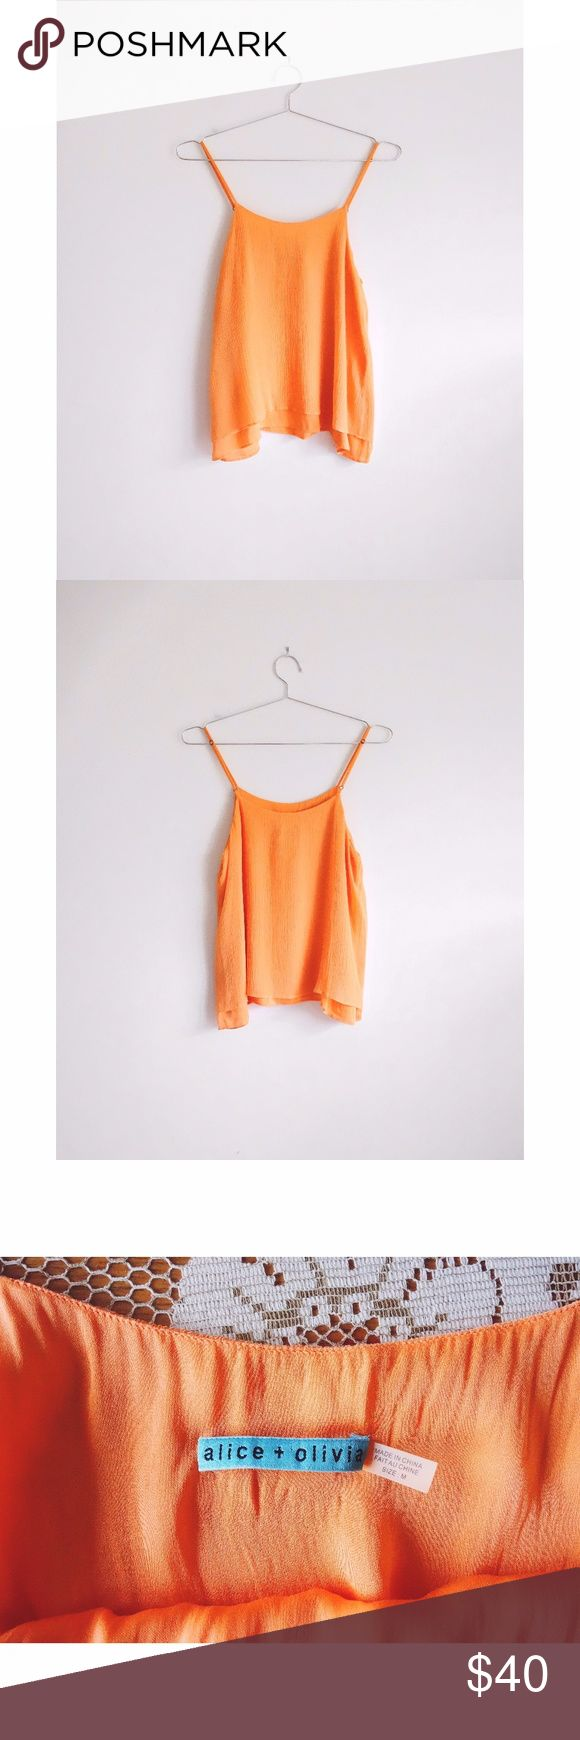 "Alice + Olivia Tangerine Orange Silk Cami Top sz M Alice + Olivia Melon Tangerine Orange Silk Cami Blouse size Medium, gently used--no rips, stains, or holes, style# R205008687, scoop neck, adjustable spaghetti straps, floaty silhouette, neon tangerine soft orange crinkled silk georgette layered over match stretch silk lining, 100% silk, lining 94% silk, 6% spandex, ~18"" pit to pit, 16"" middle of neckline to hem Alice + Olivia Tops Blouses"